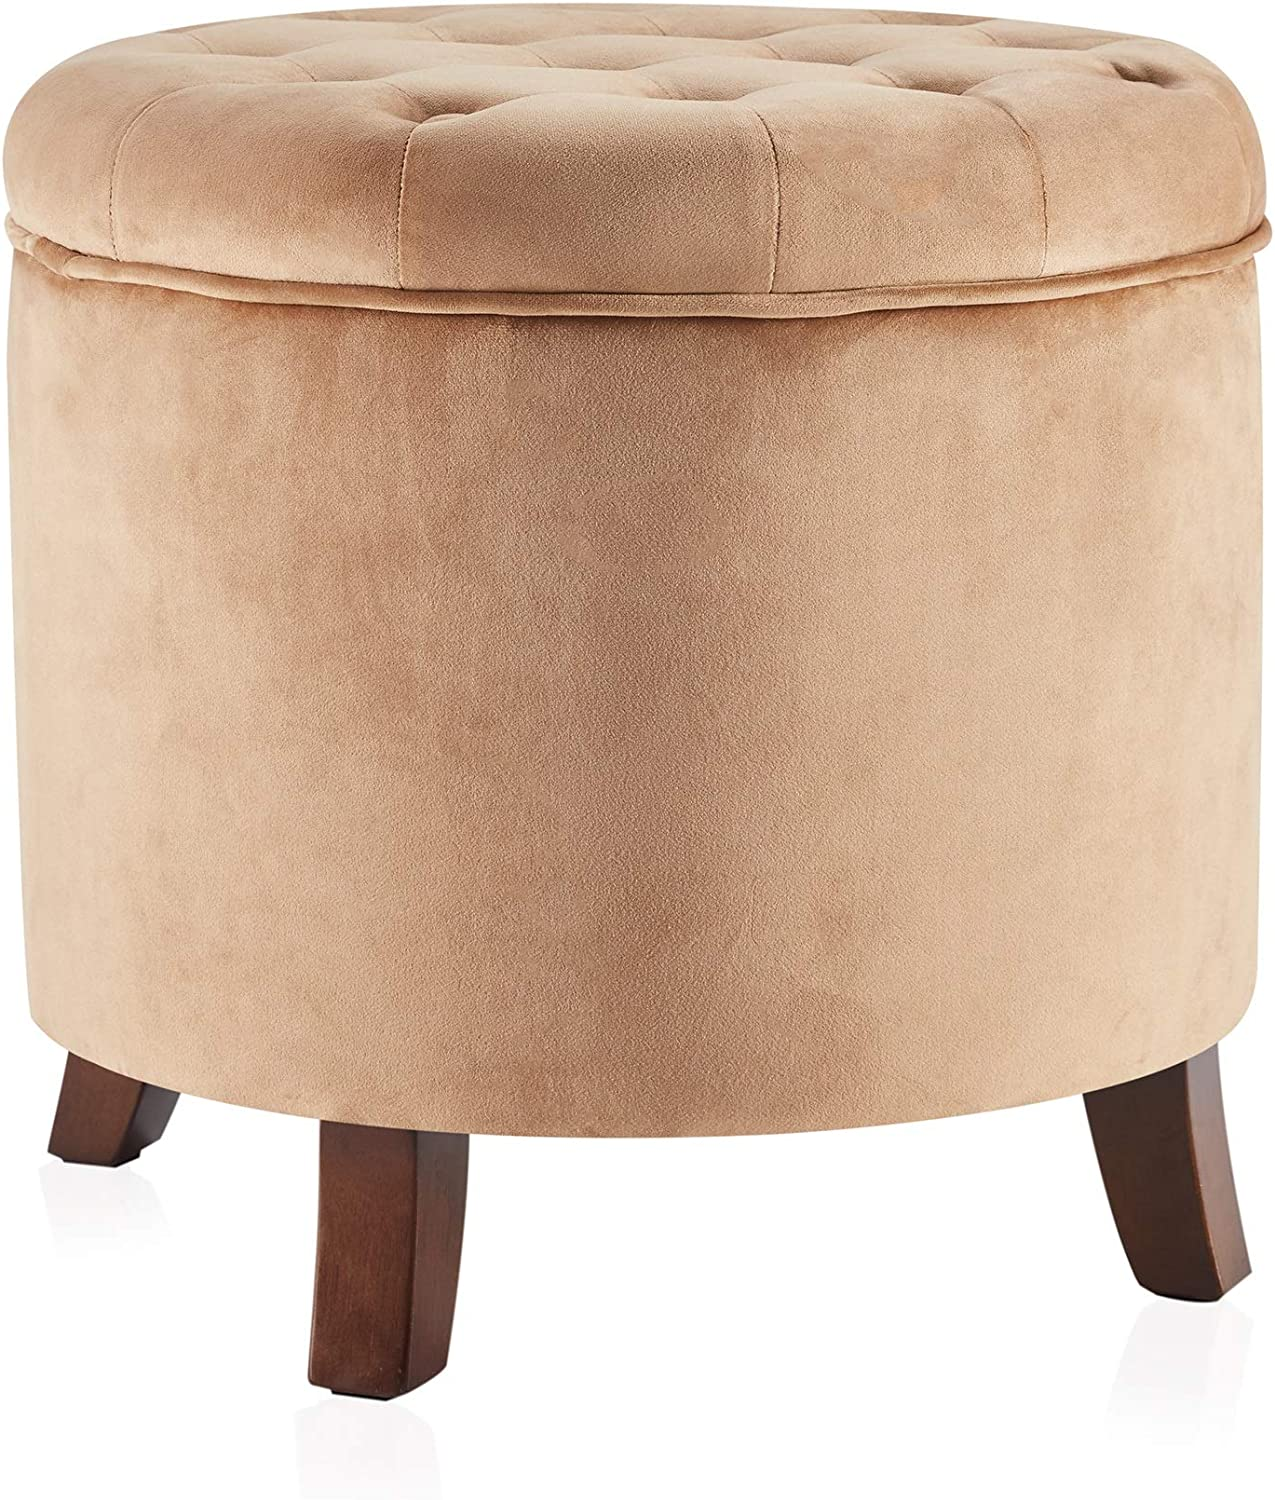 BELLEZE Nailhead Round Tufted Storage Ottoman Large Footrest Stool Coffee Table Lift Top, Tan